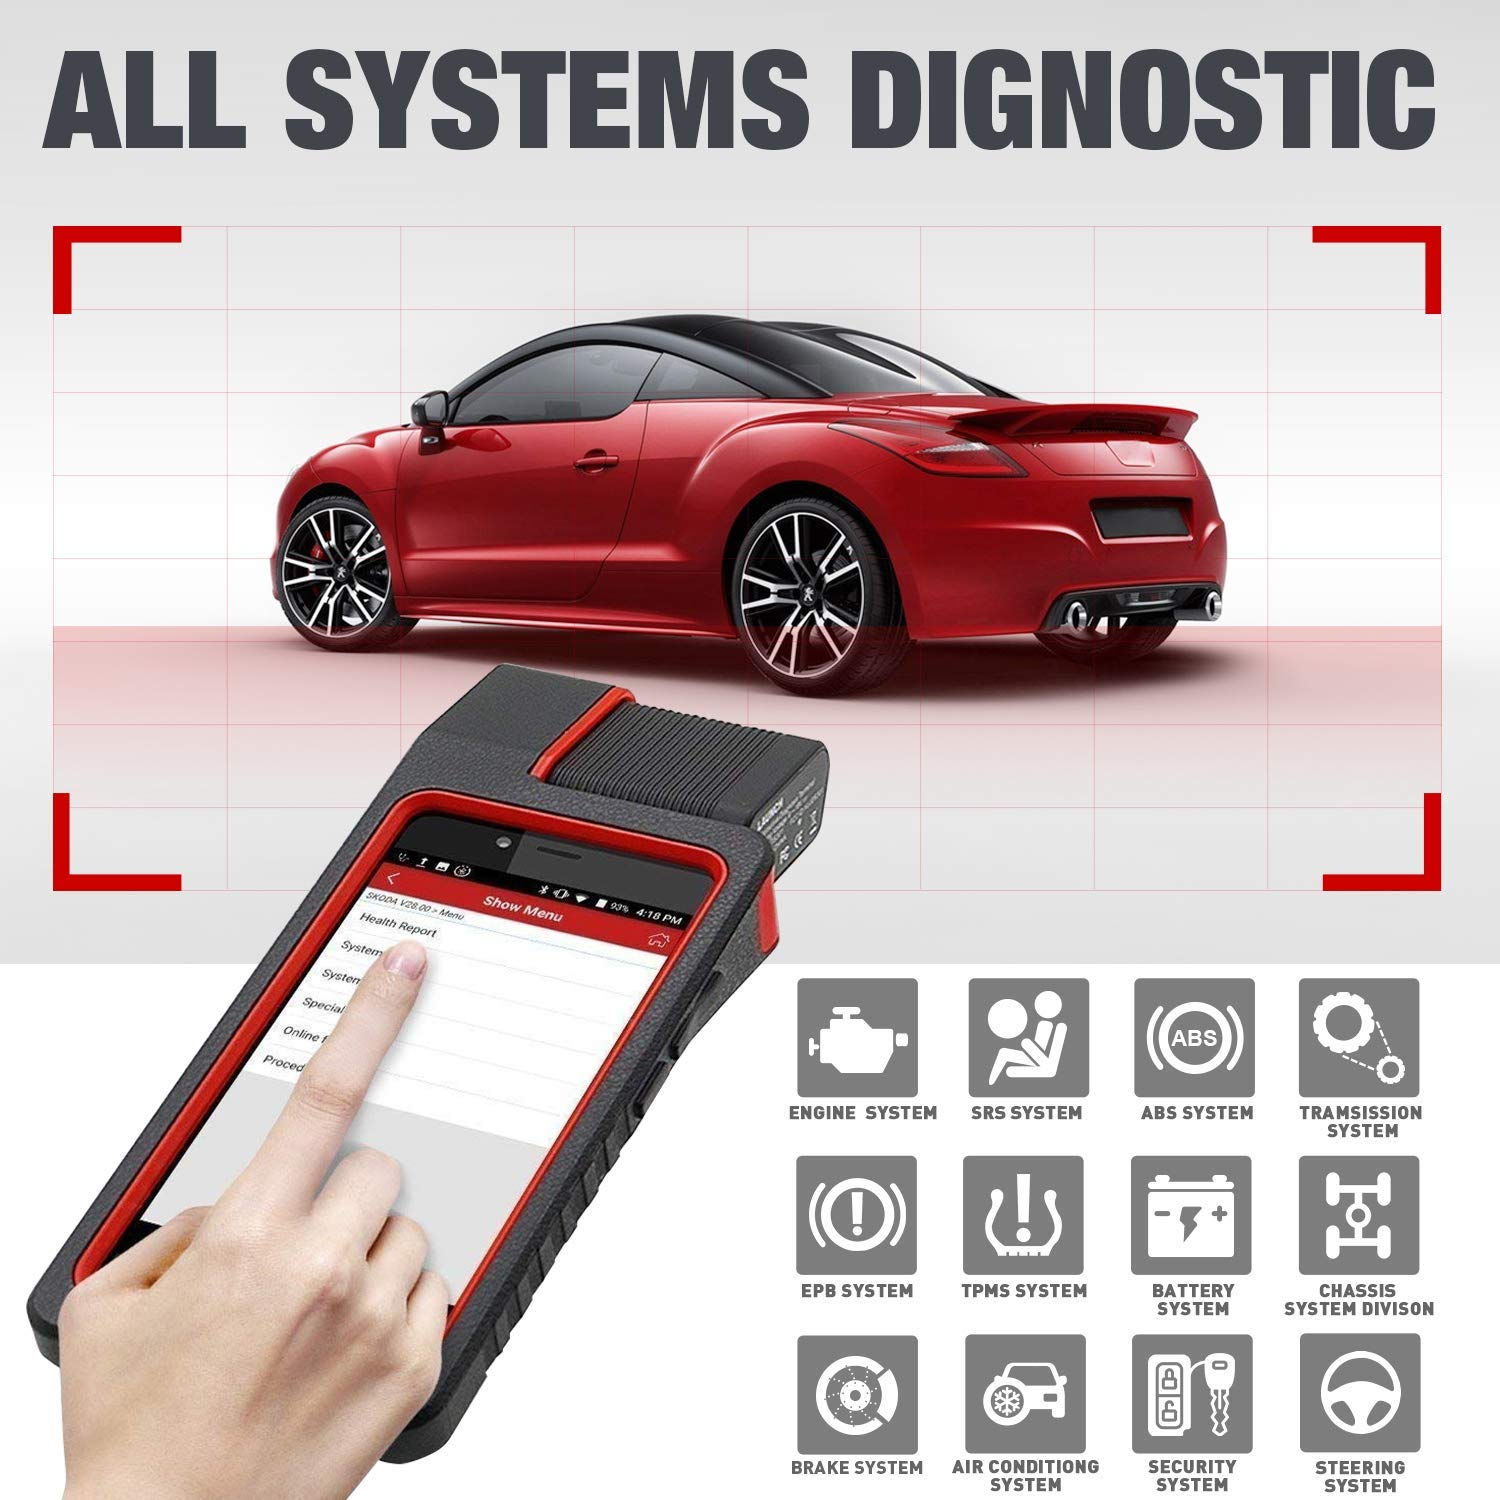 LAUNCH X431 DIAGUN IV WiFi/Bluetooth OBD2 Scanner Auto Full System Diagnostic Tool Support ECU Coding,Actuation Test,Remote Diagnostic 11 Reset Functions Diagnostic Report - Free Update 2 Years by LAUNCH (Image #4)